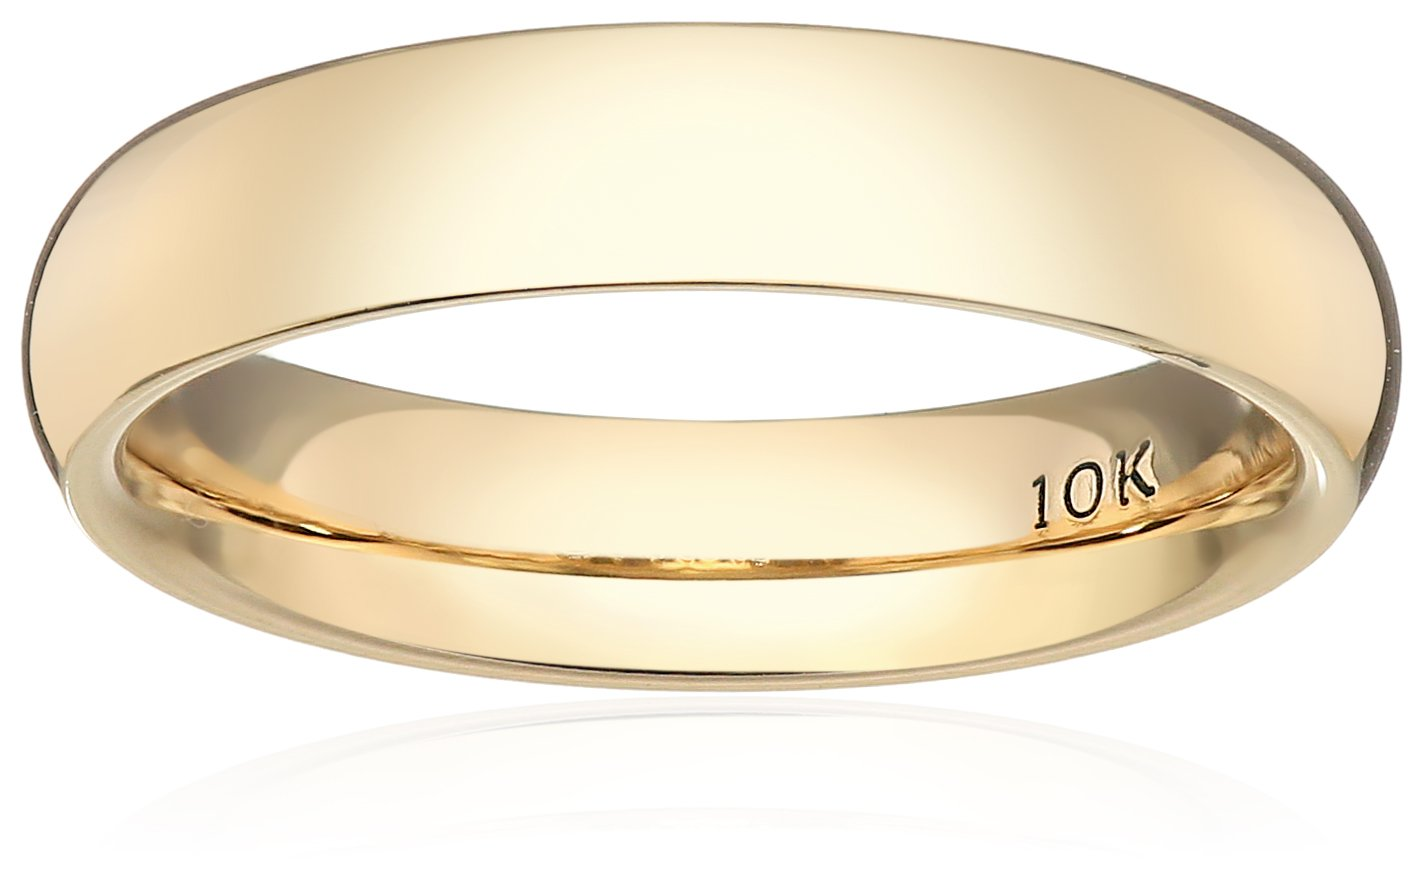 Standard Comfort-Fit 10K Yellow Gold Band, 4mm, Size 8